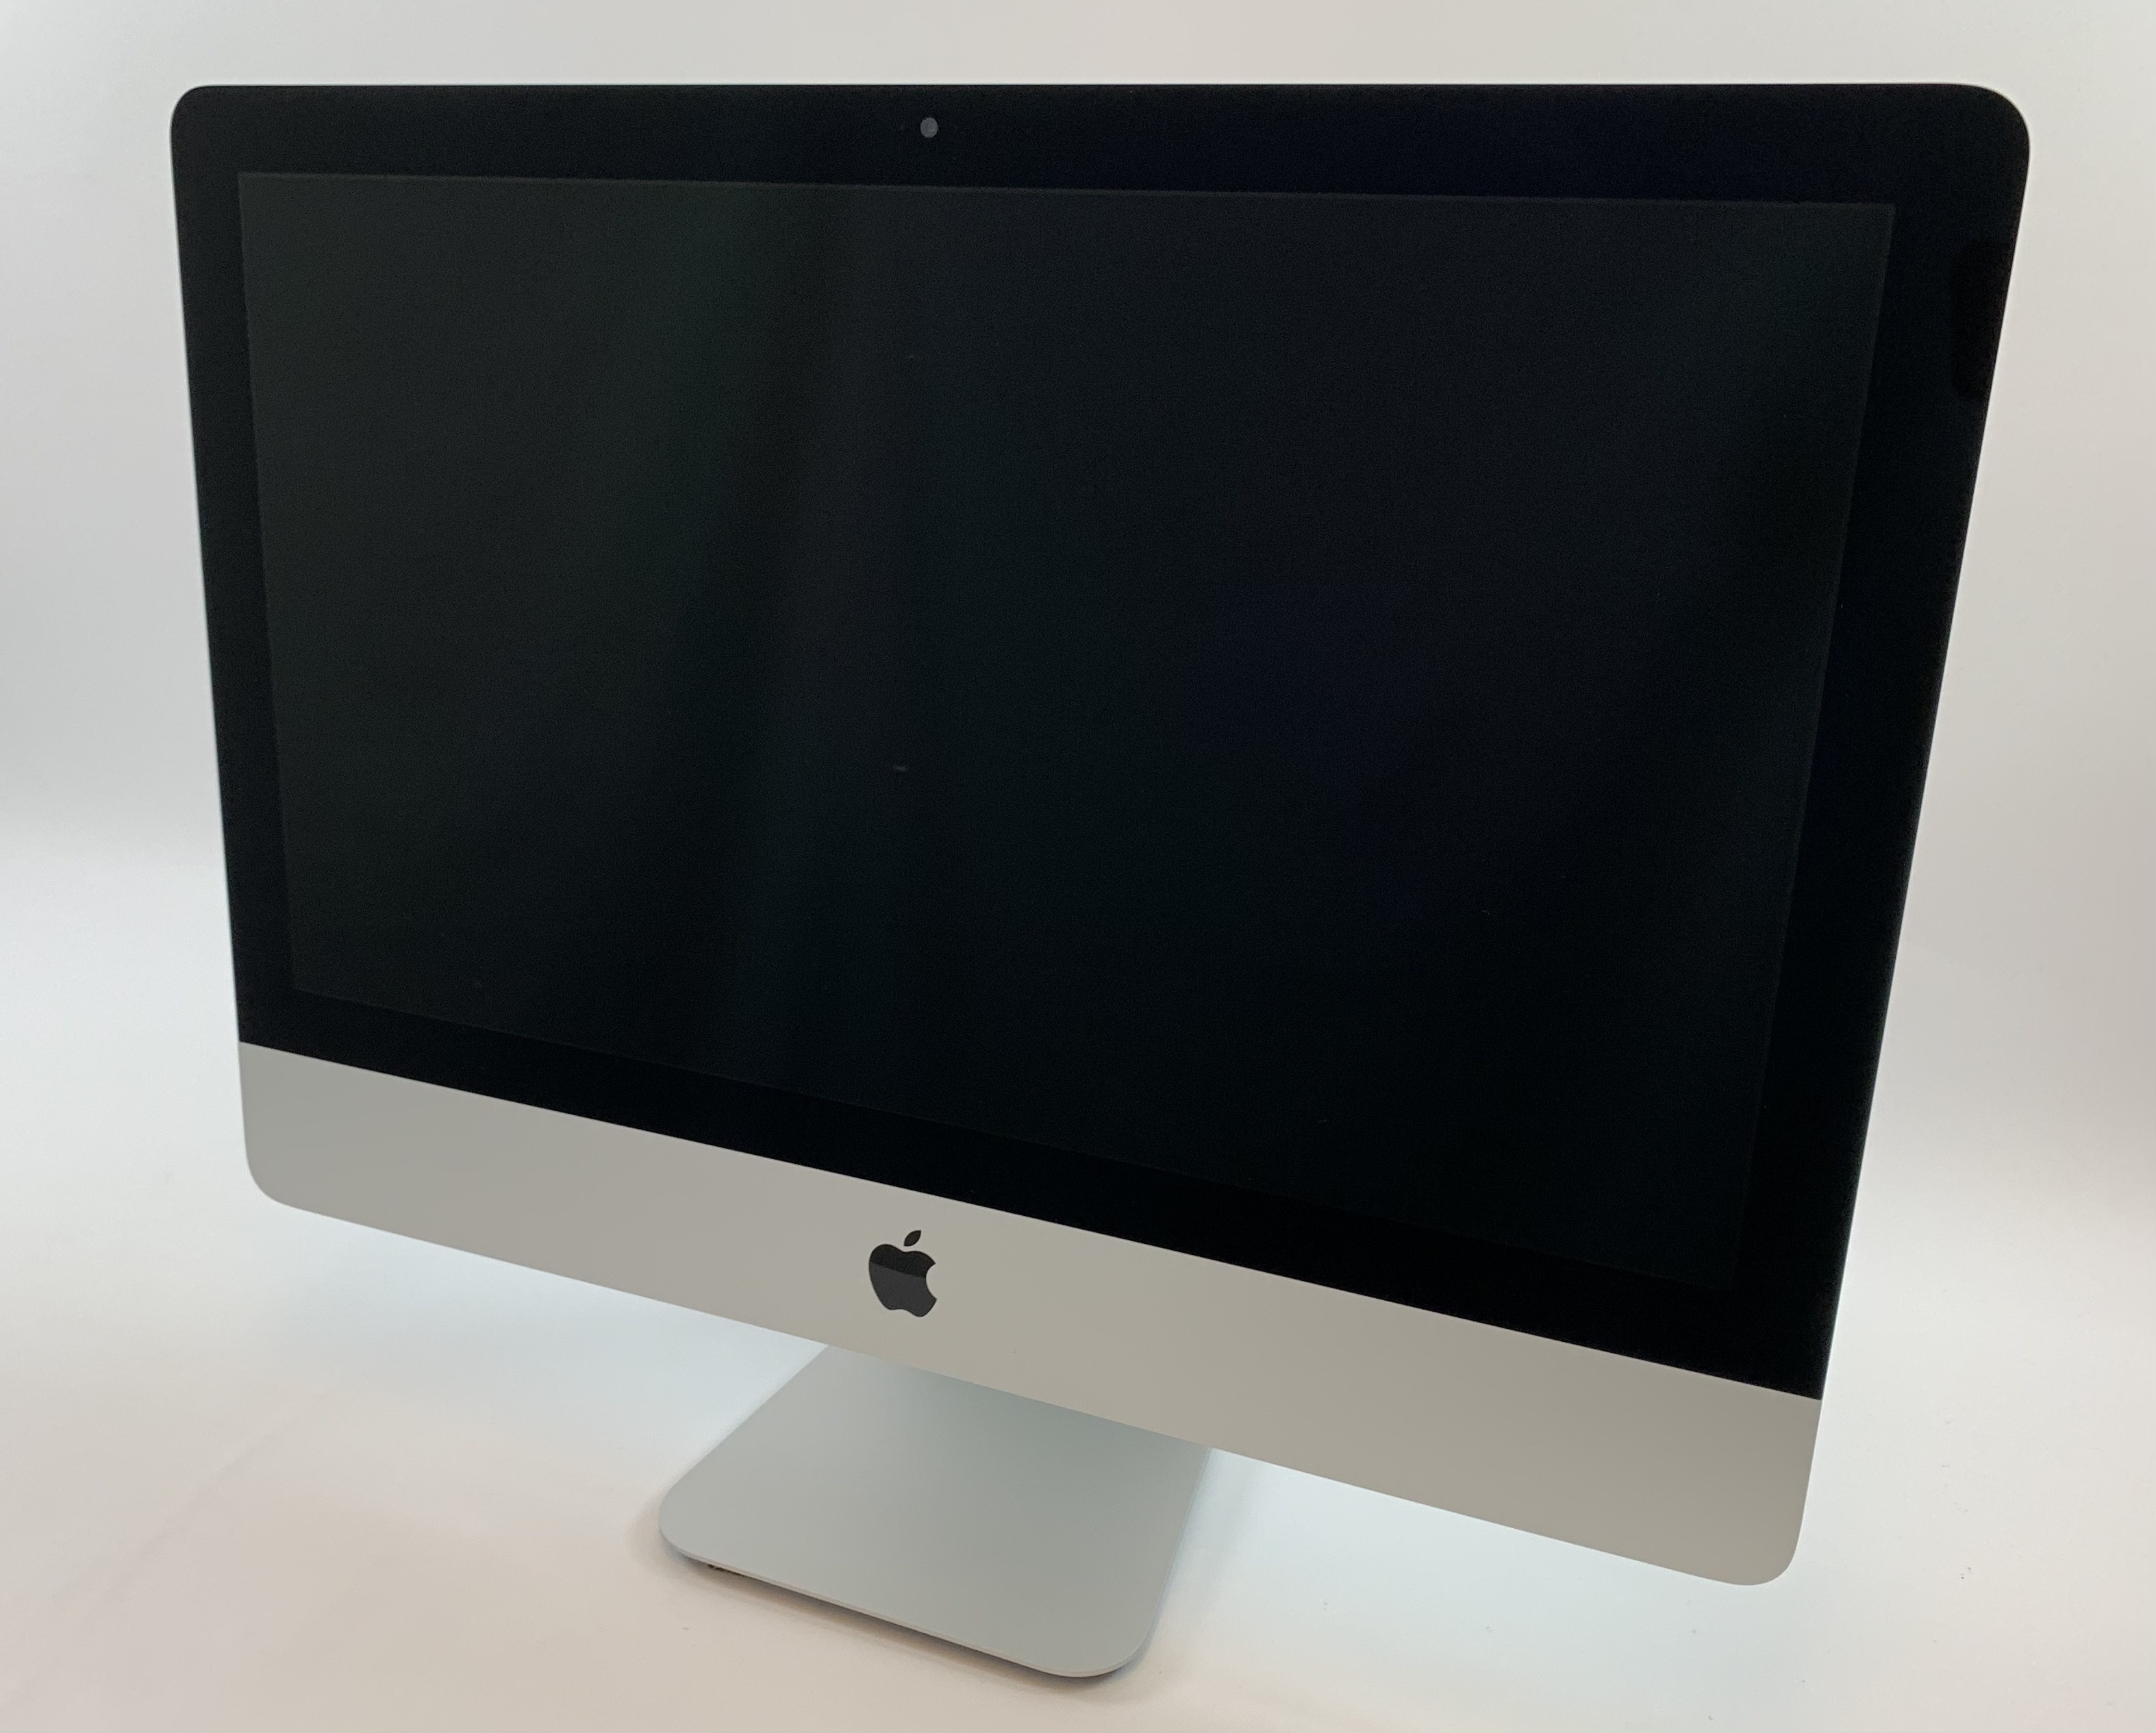 "iMac 21.5"" Mid 2017 (Intel Core i5 2.3 GHz 8 GB RAM 1 TB HDD), Intel Core i5 2.3 GHz, 8 GB RAM, 1 TB HDD, immagine 1"